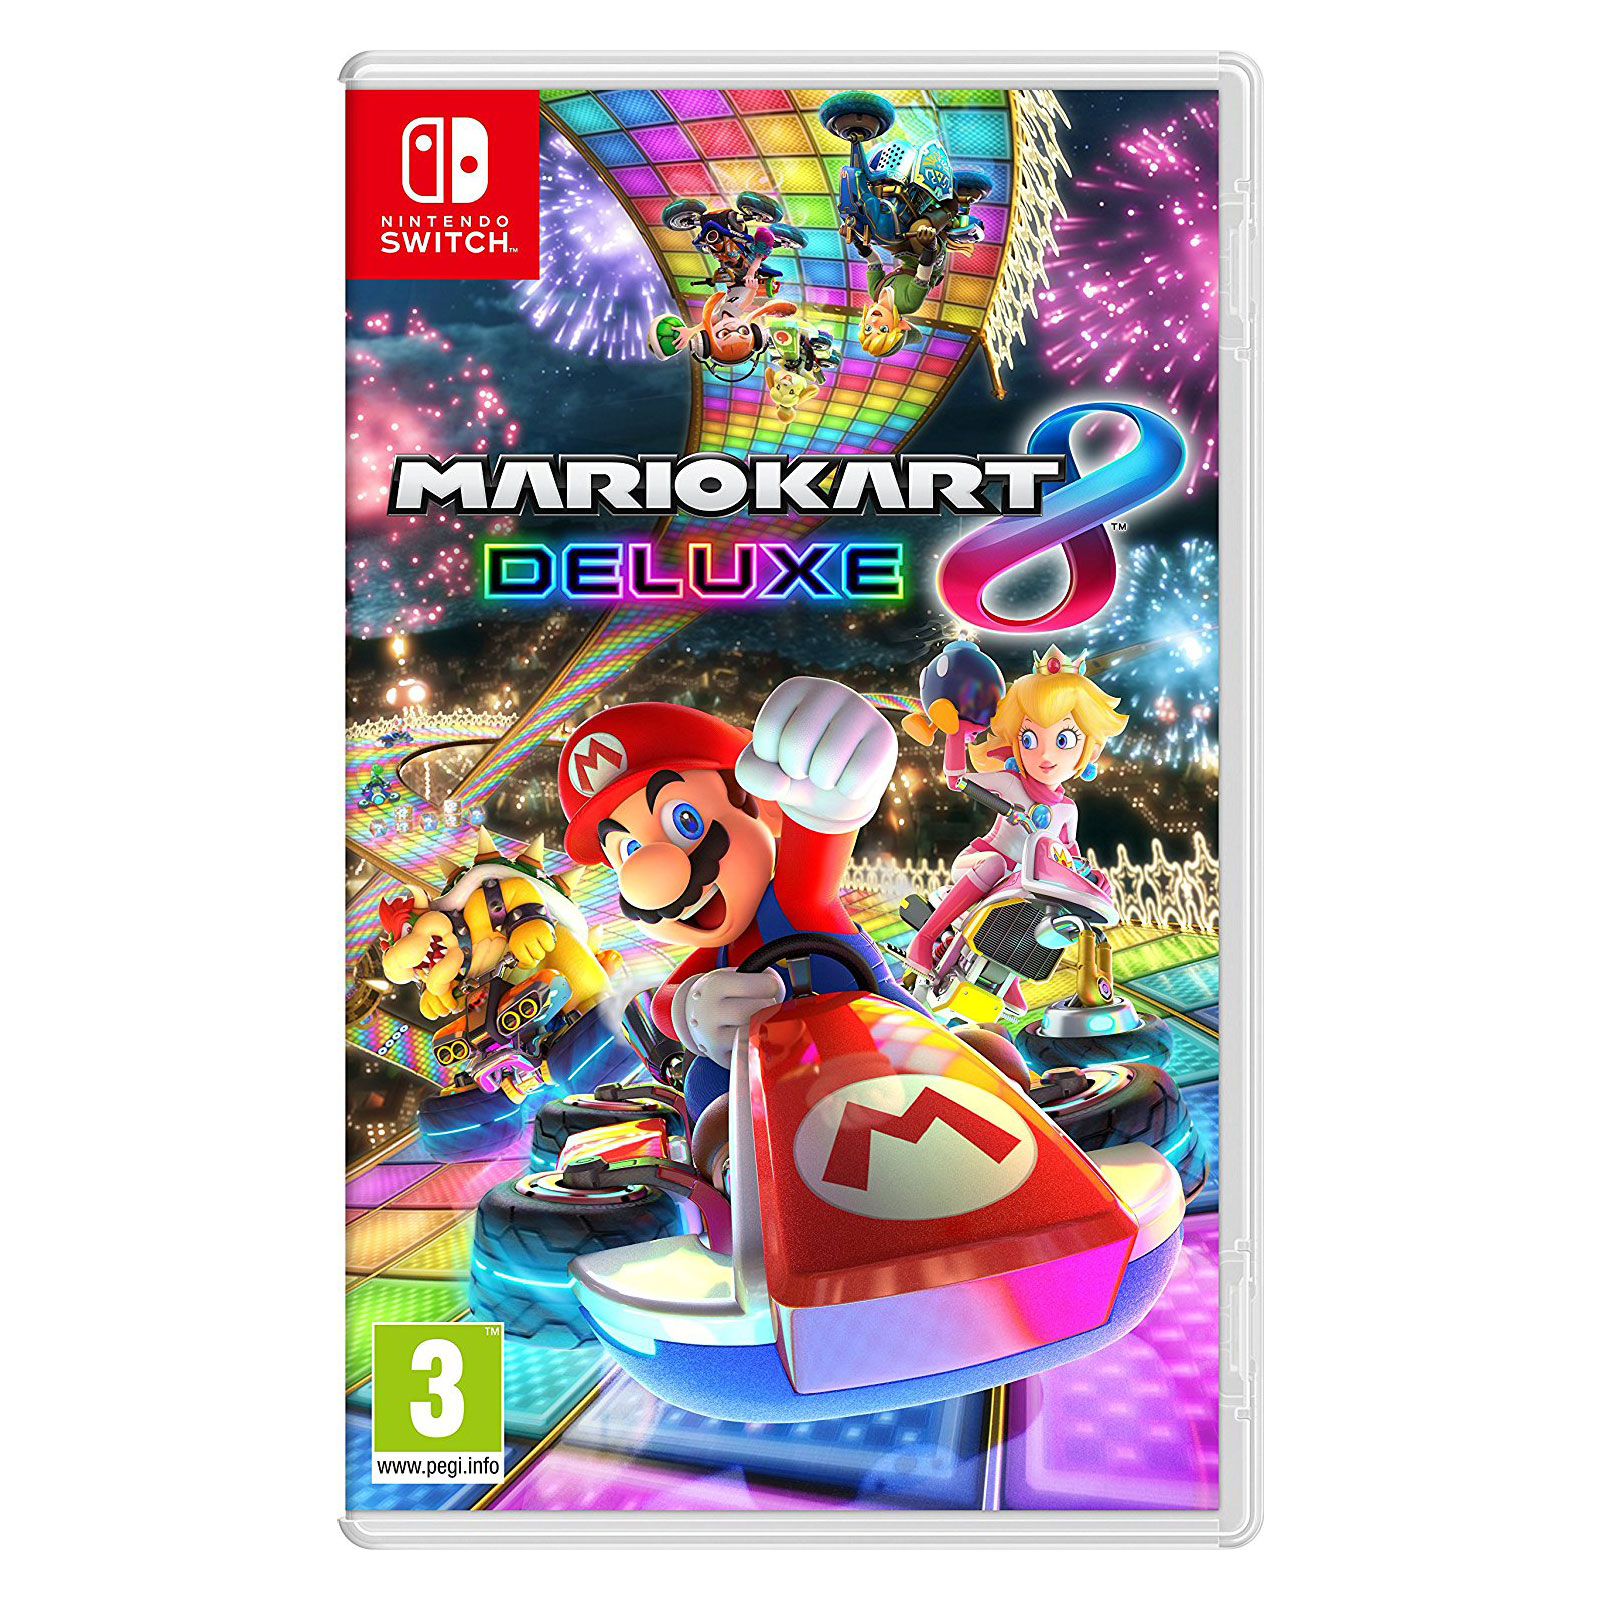 mario kart 8 deluxe switch jeux nintendo switch nintendo sur. Black Bedroom Furniture Sets. Home Design Ideas